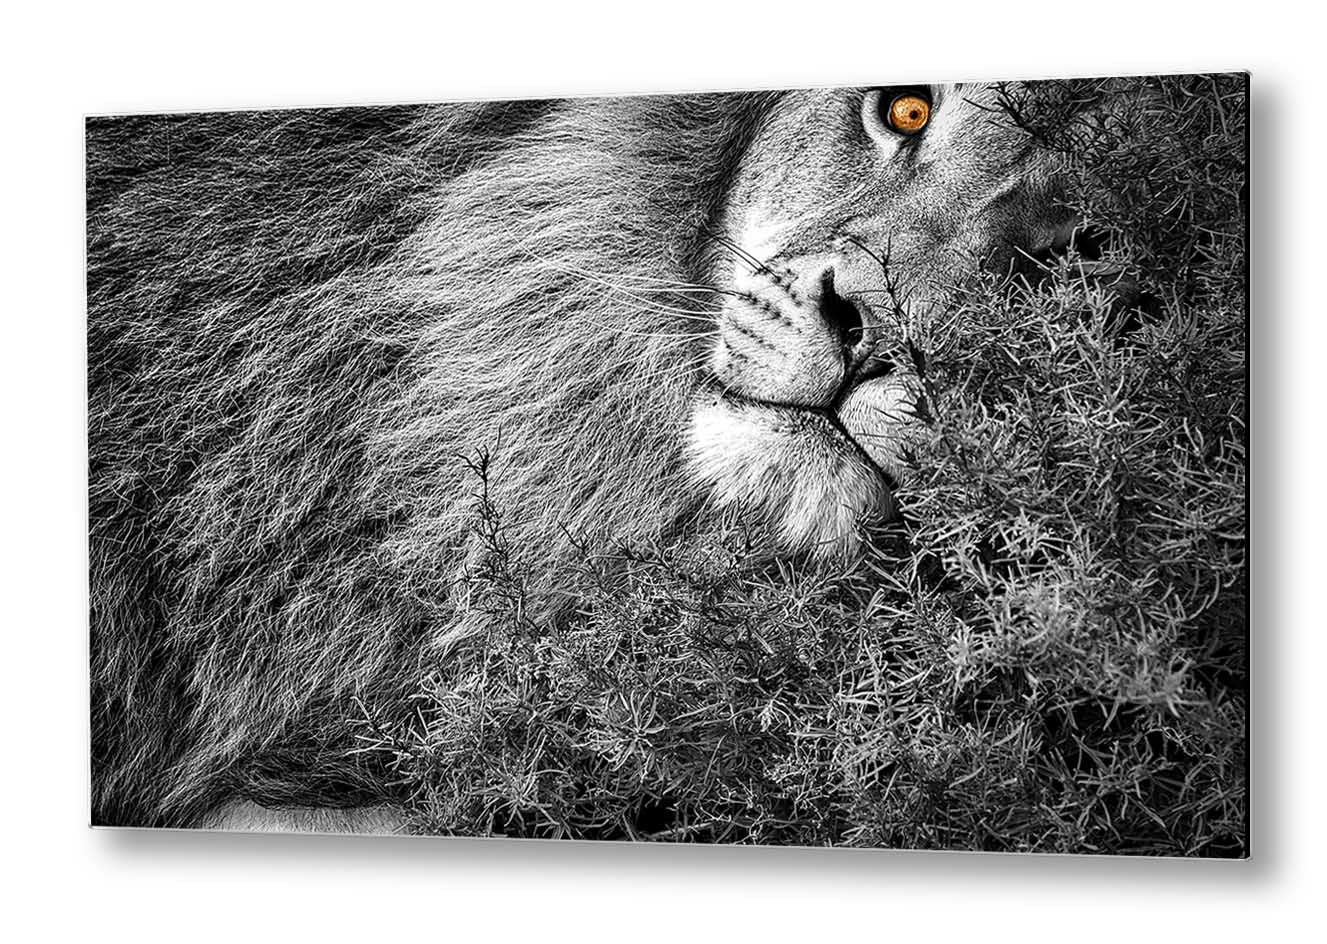 The Kings Nap | Special edition Art Print on Aluminium